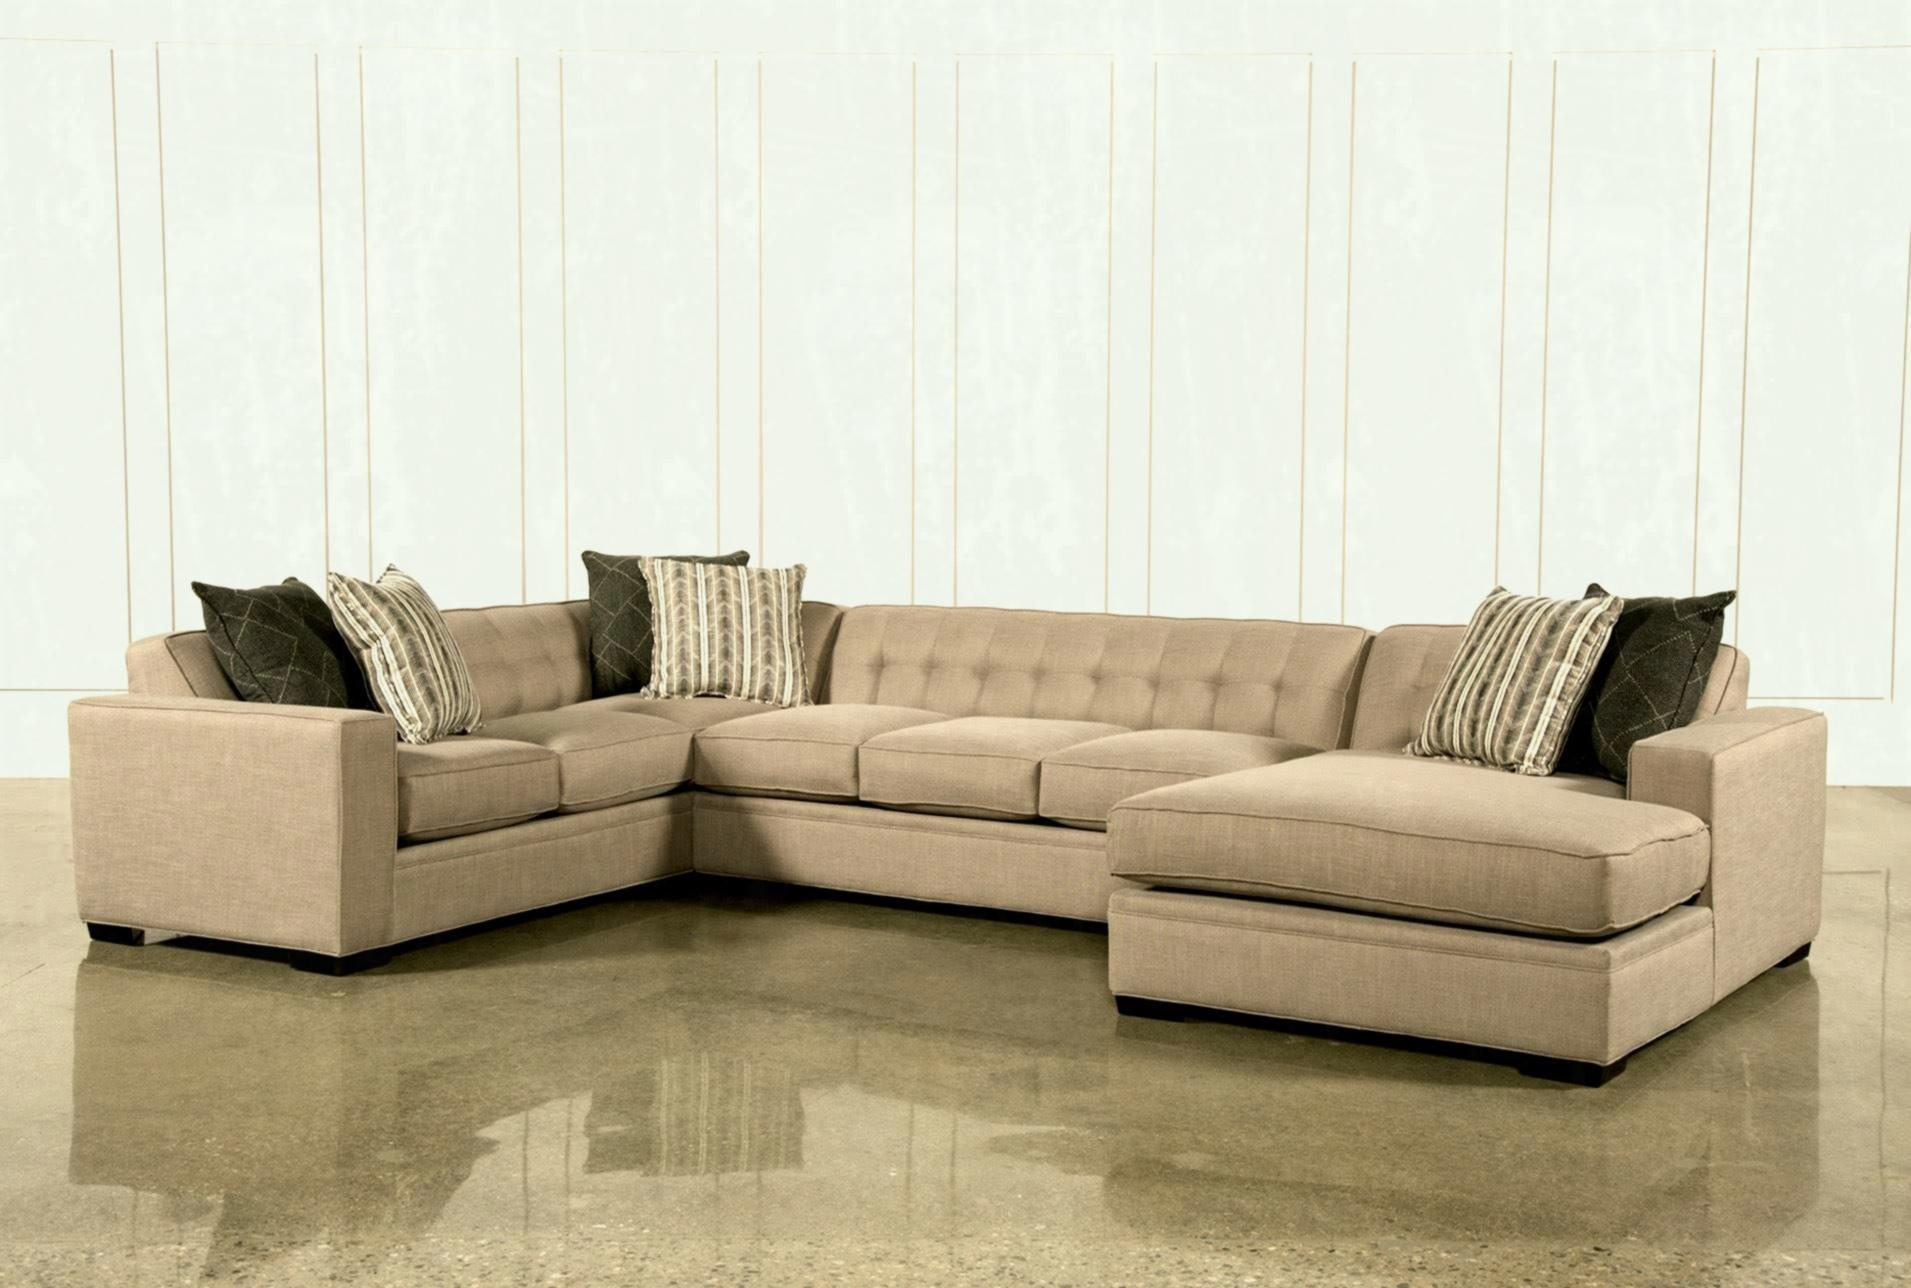 Living Spaces Sectional – Tidex In Meyer 3 Piece Sectionals With Laf Chaise (View 11 of 25)